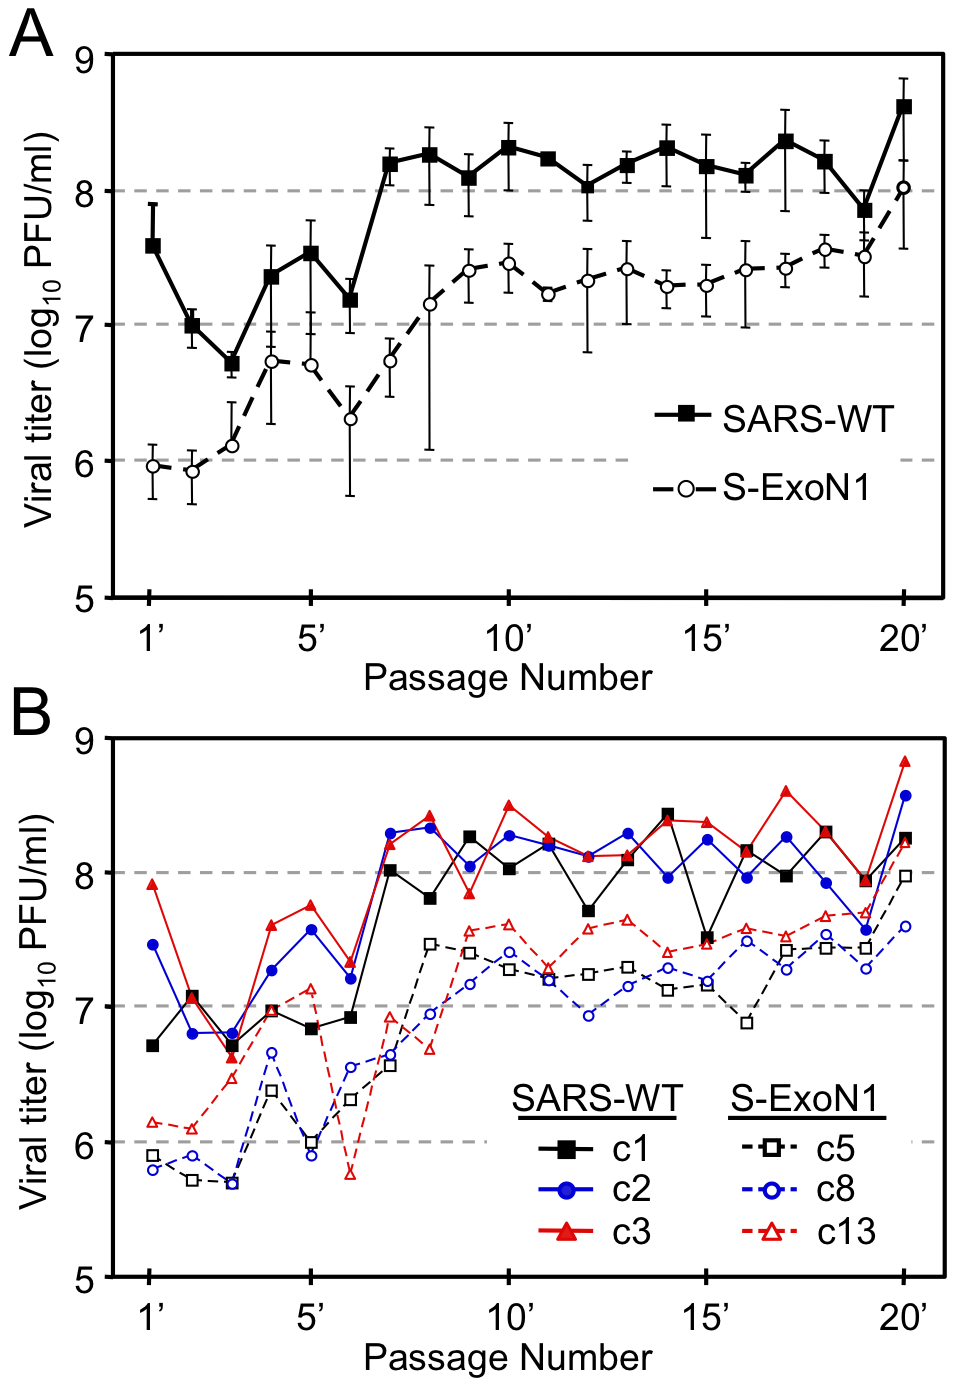 SARS-WT and S-ExoN1 titers across 20 population passages.